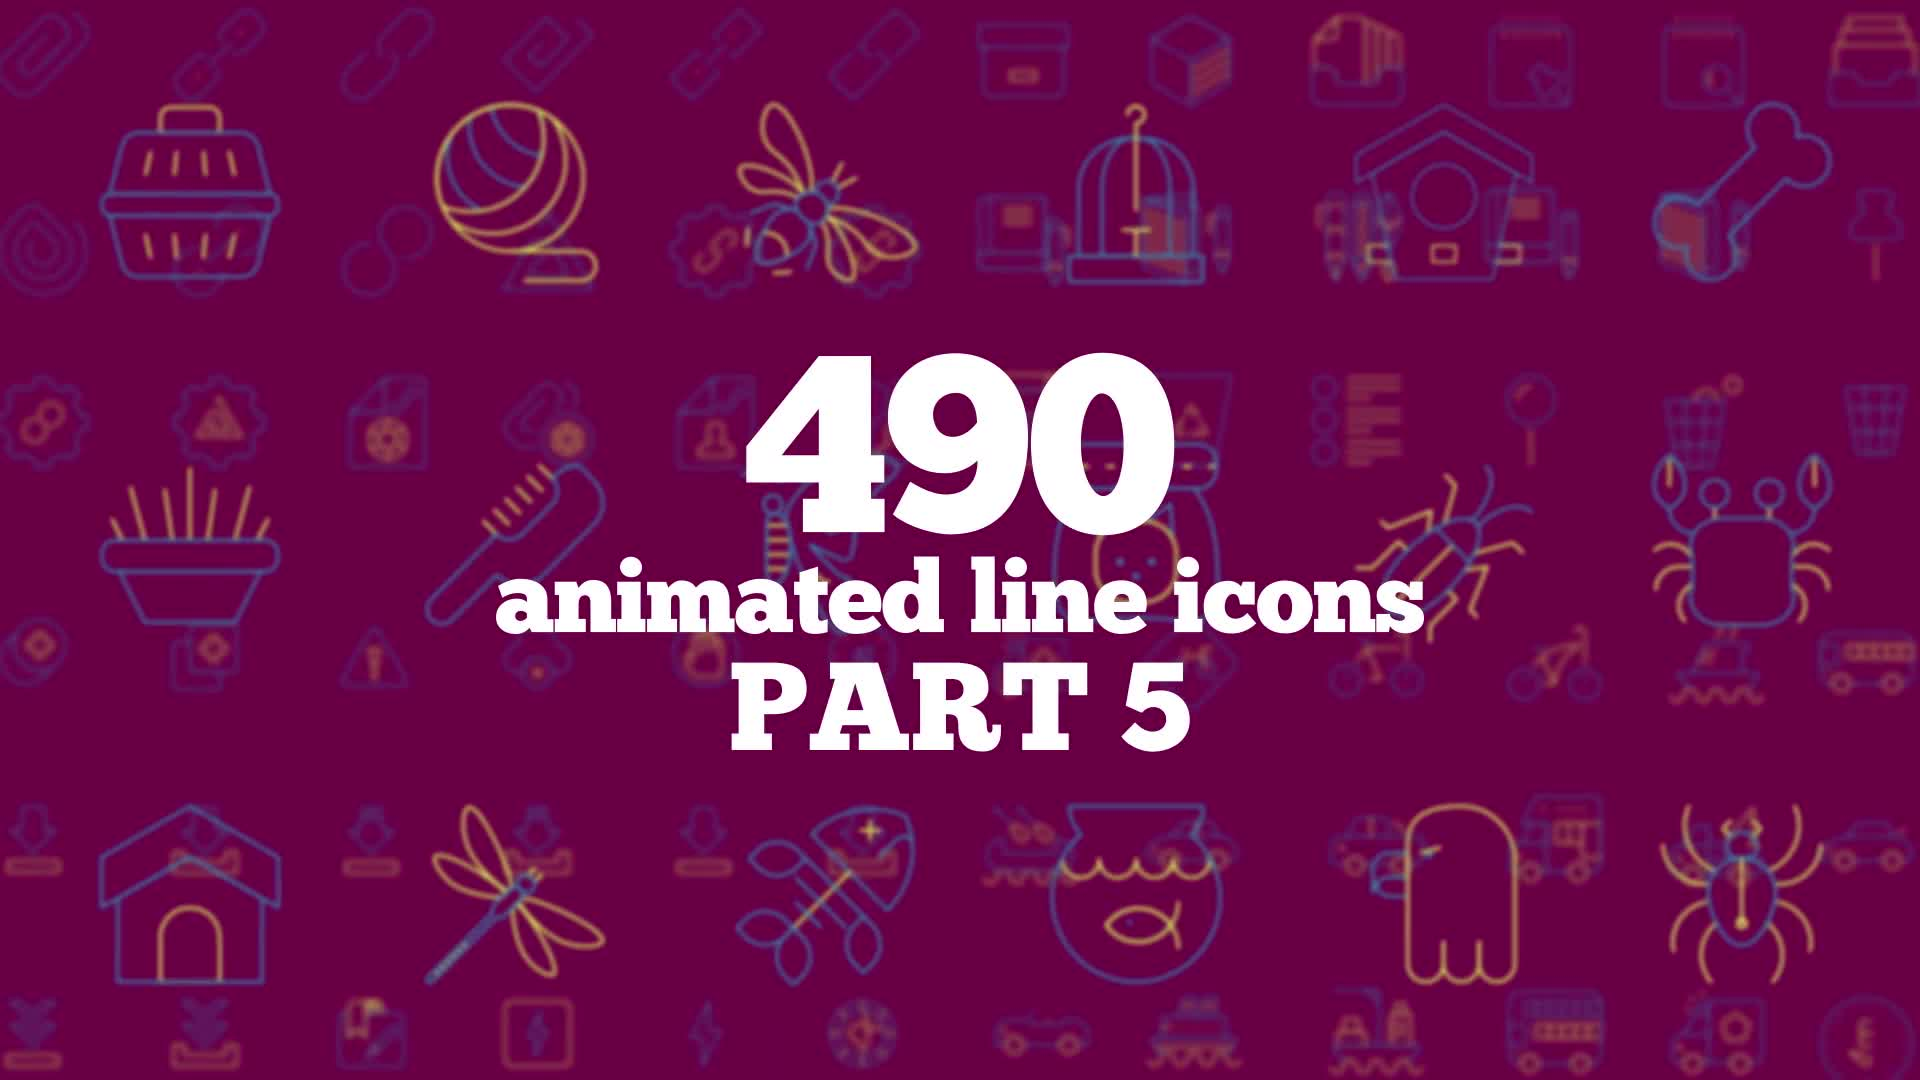 490 Animated Line Icons Videohive 23629751 After Effects Image 1